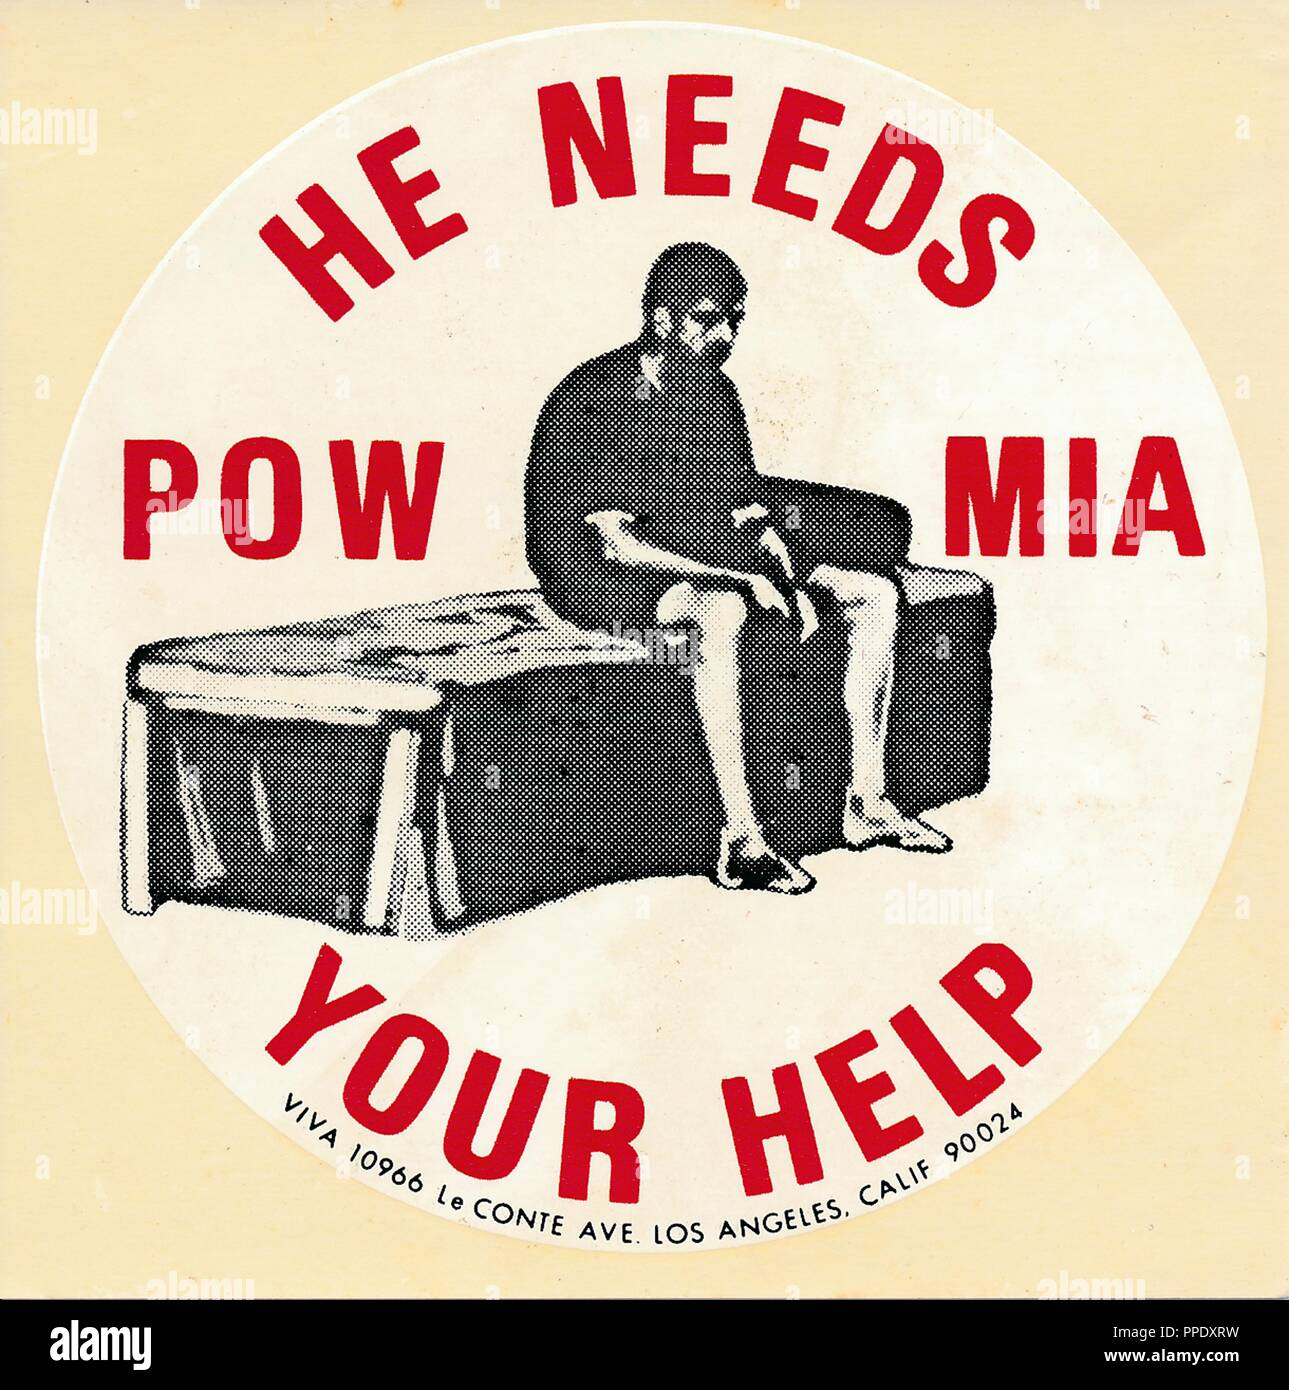 Red, white, and black sticker or decal, with a graphic design depicting a dispirited man sitting on the edge of a bed, with the text 'POW MIA, He Needs Your Help, ' published in Los Angeles, California, during the Vietnam War, 1975. () - Stock Image